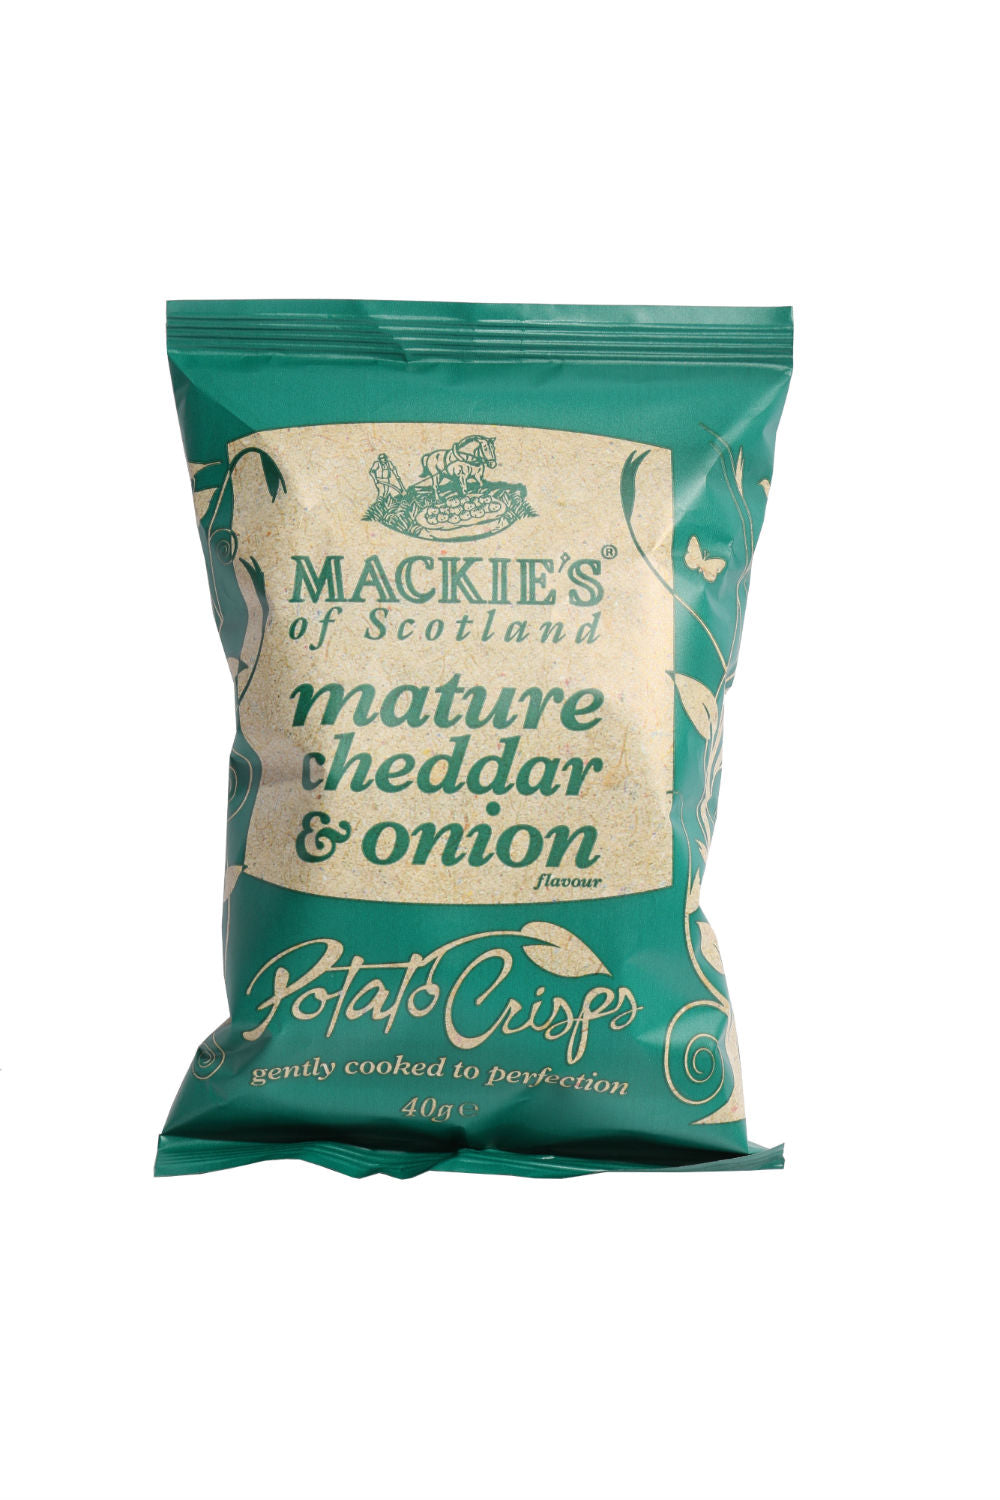 Mackie's cheddar & onion chips